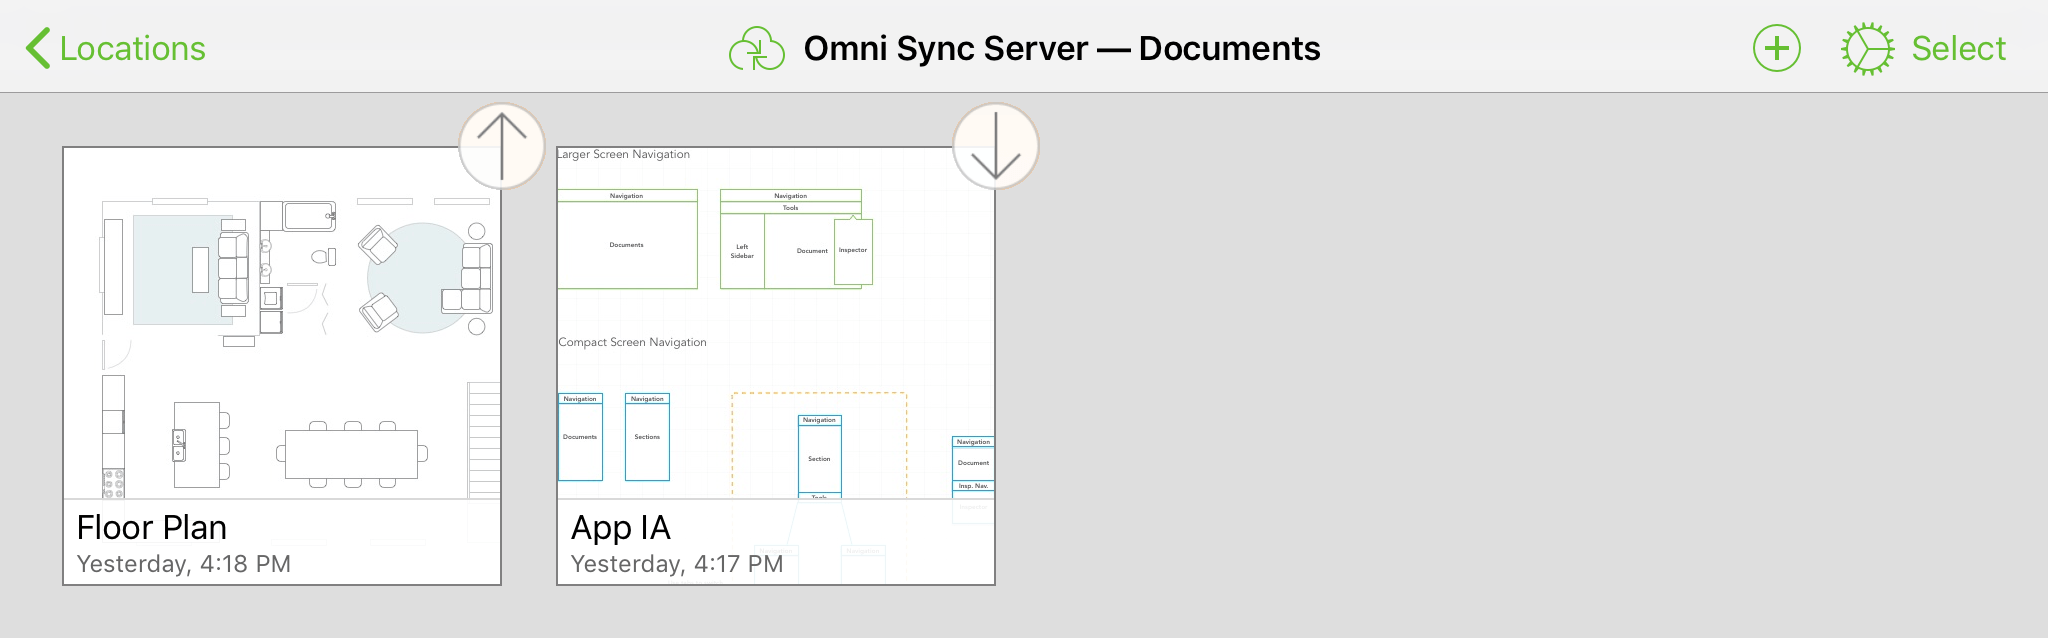 A synced OmniPresence folder with up and down arrow icons attached to some of the document thumbnails, indicating that a sync is in process for those files.